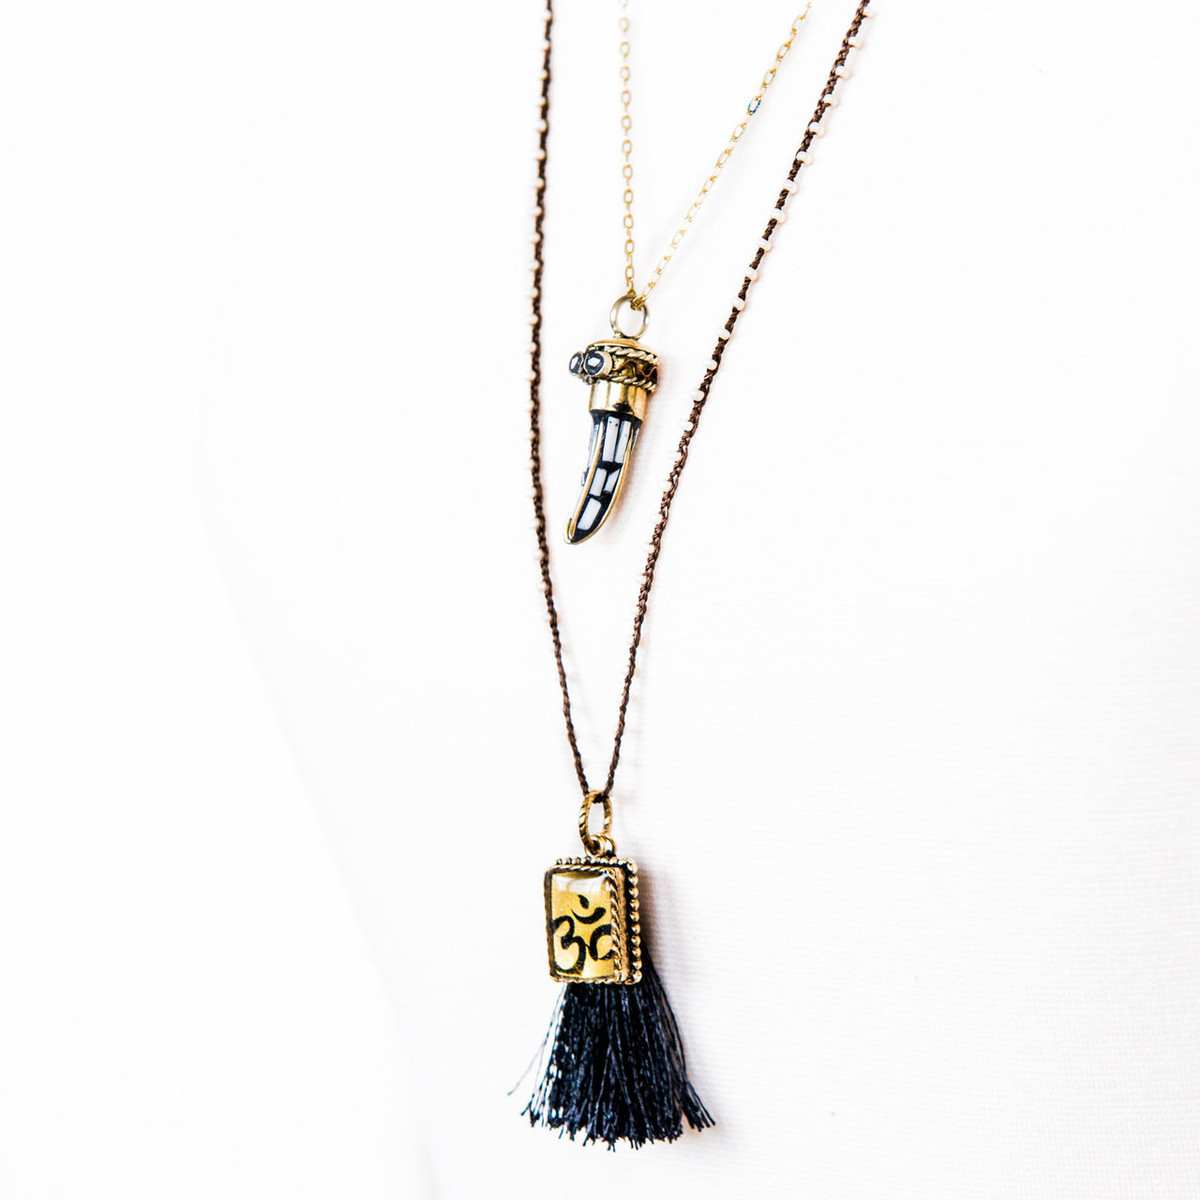 7Stitches Dark Brown double beaded Yoga Necklace